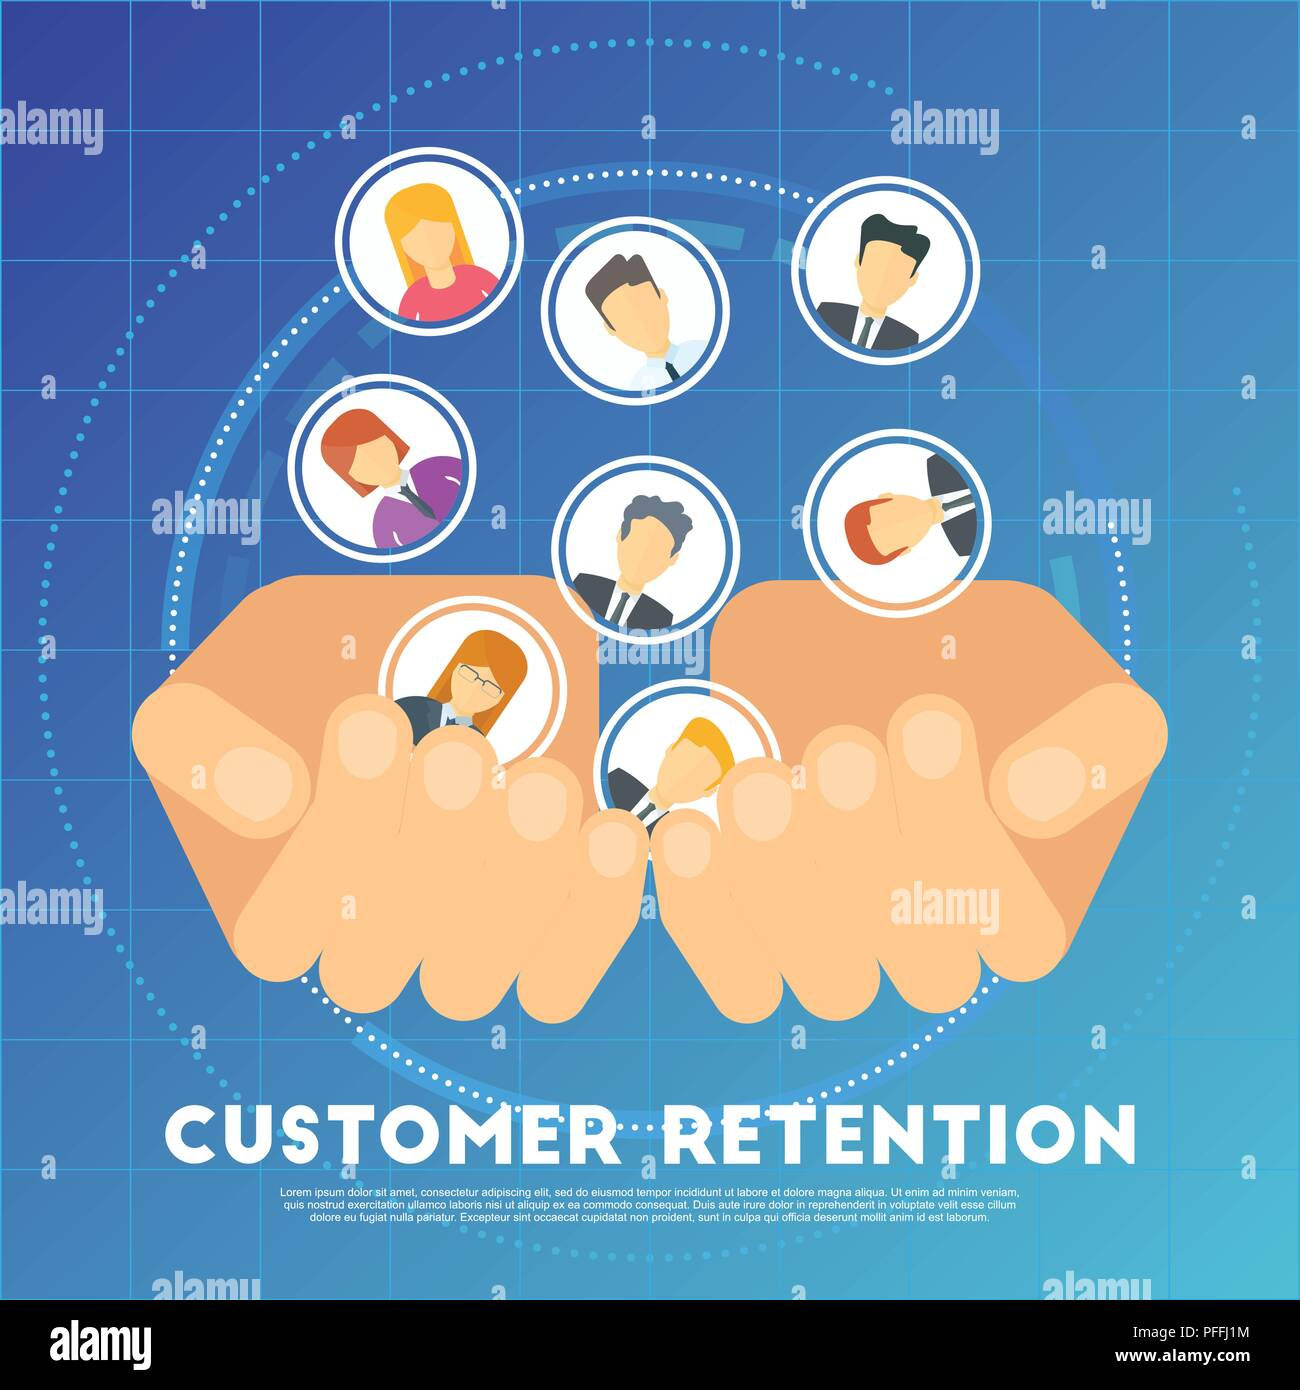 Customer retention concept. Marketing strategy of the company - Stock Image